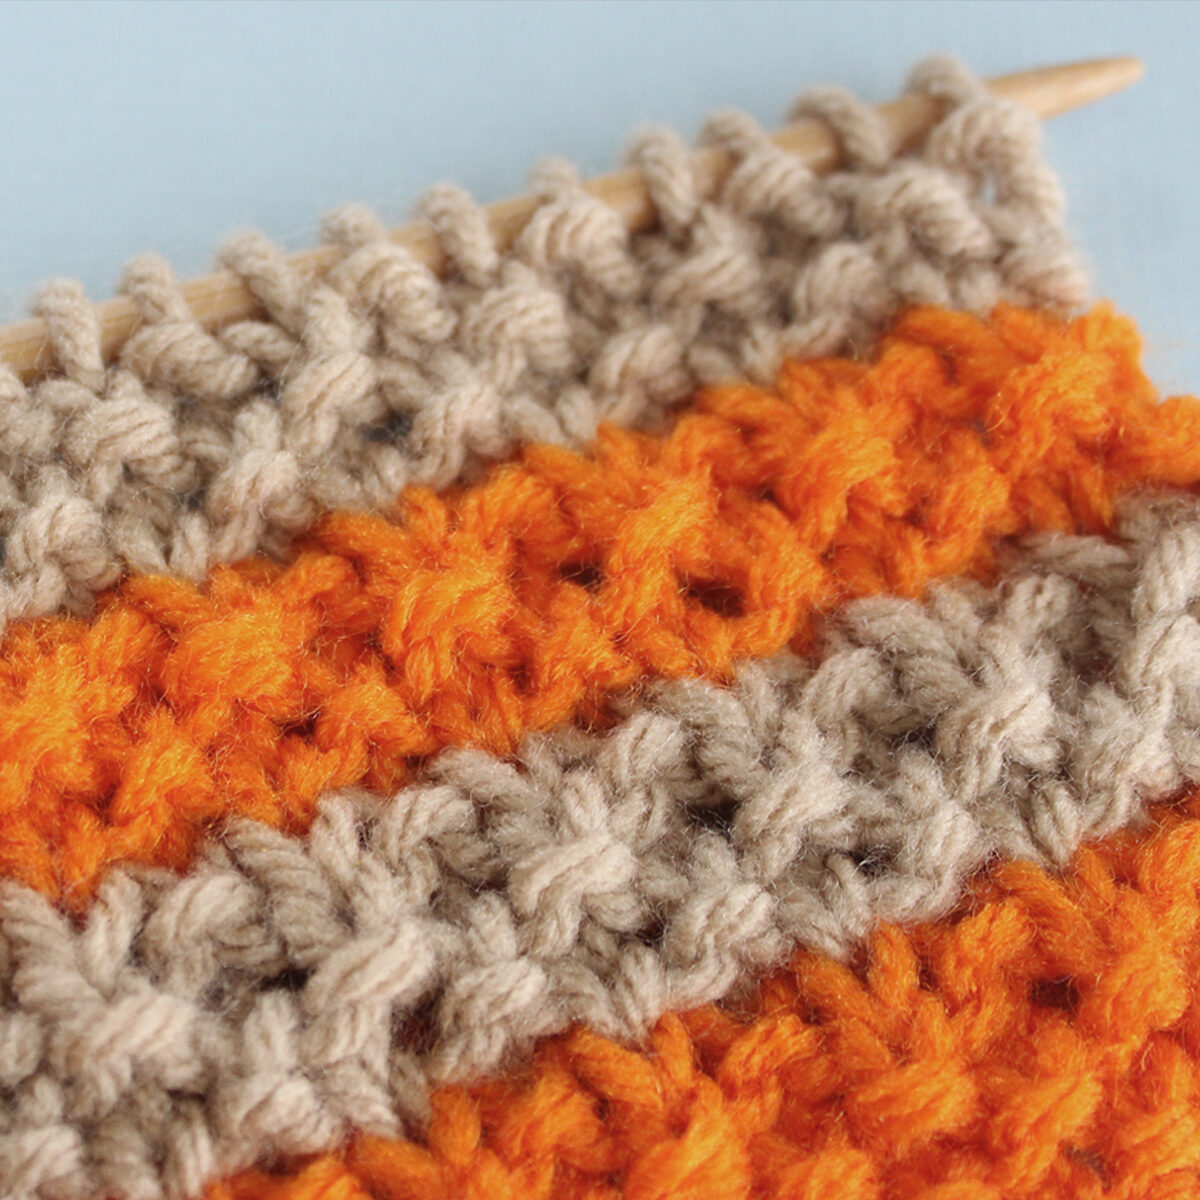 Right side of knitted swatch in tan and orange color yarn.